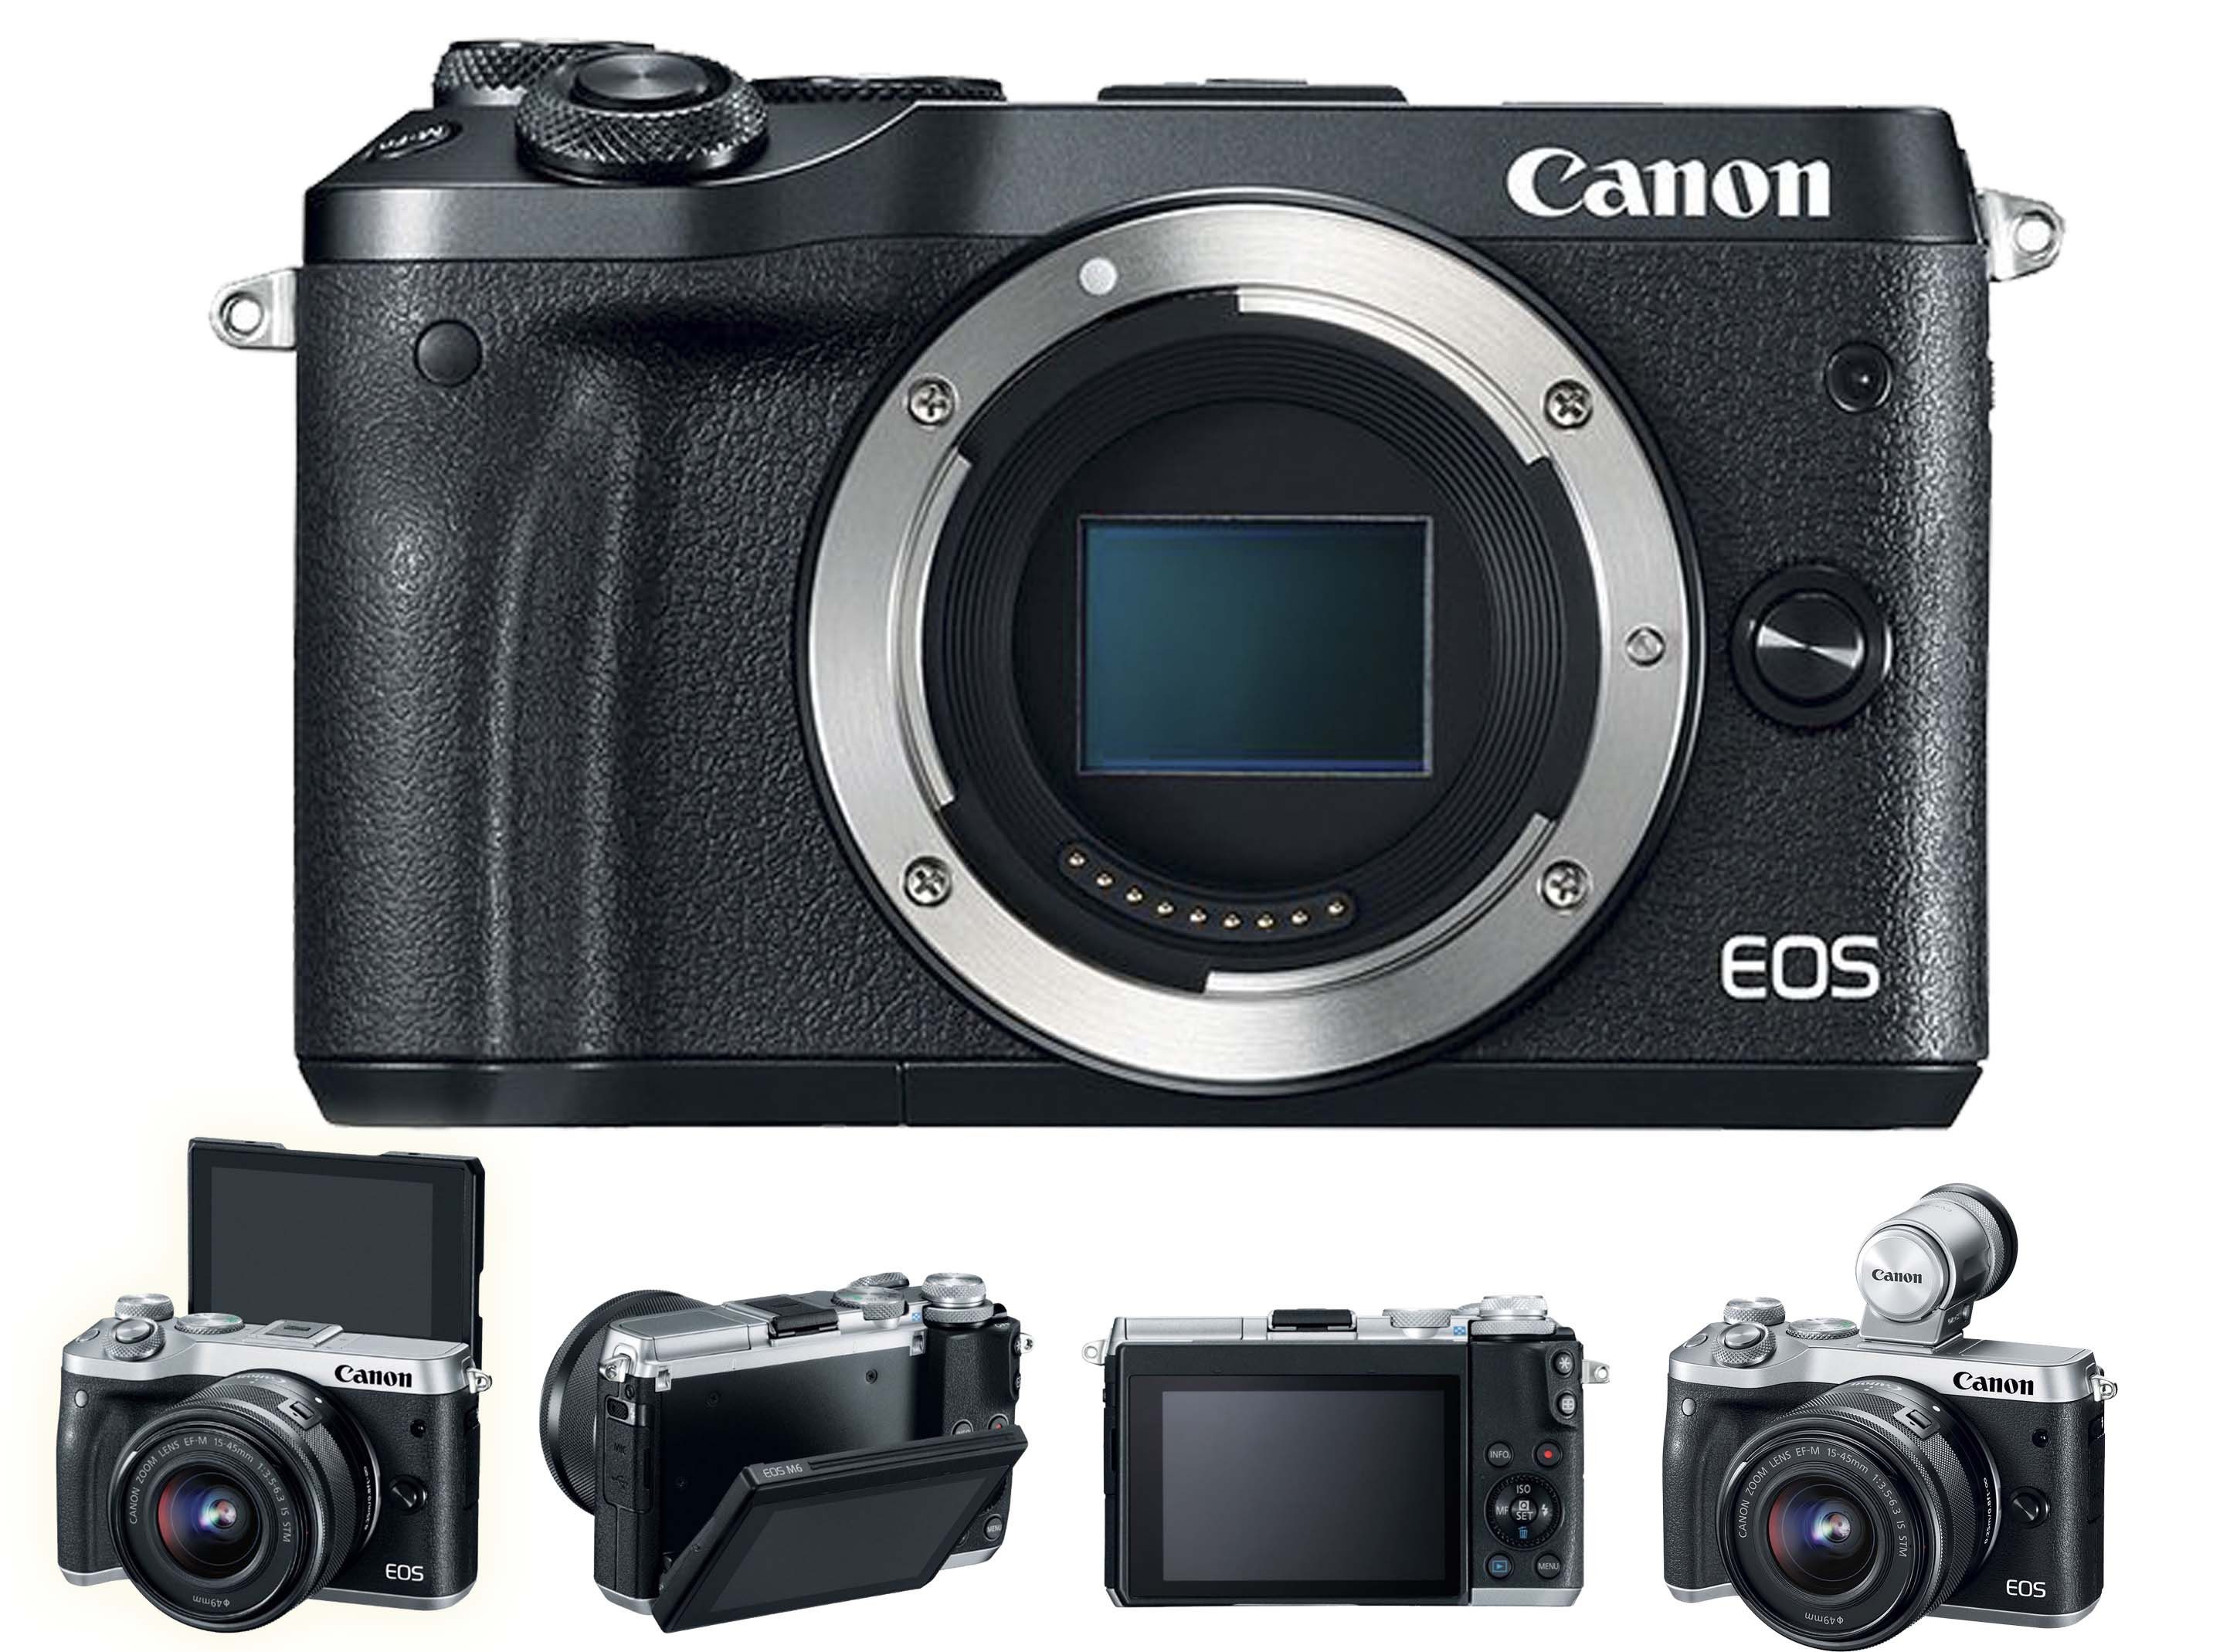 Underwater Photography News Guide Olympus Om D E M10 Mark Iii Kit 14 42mm F 35 56 Ez Silver Canon Unveils Their New Eos M6 Mirrorless Camera